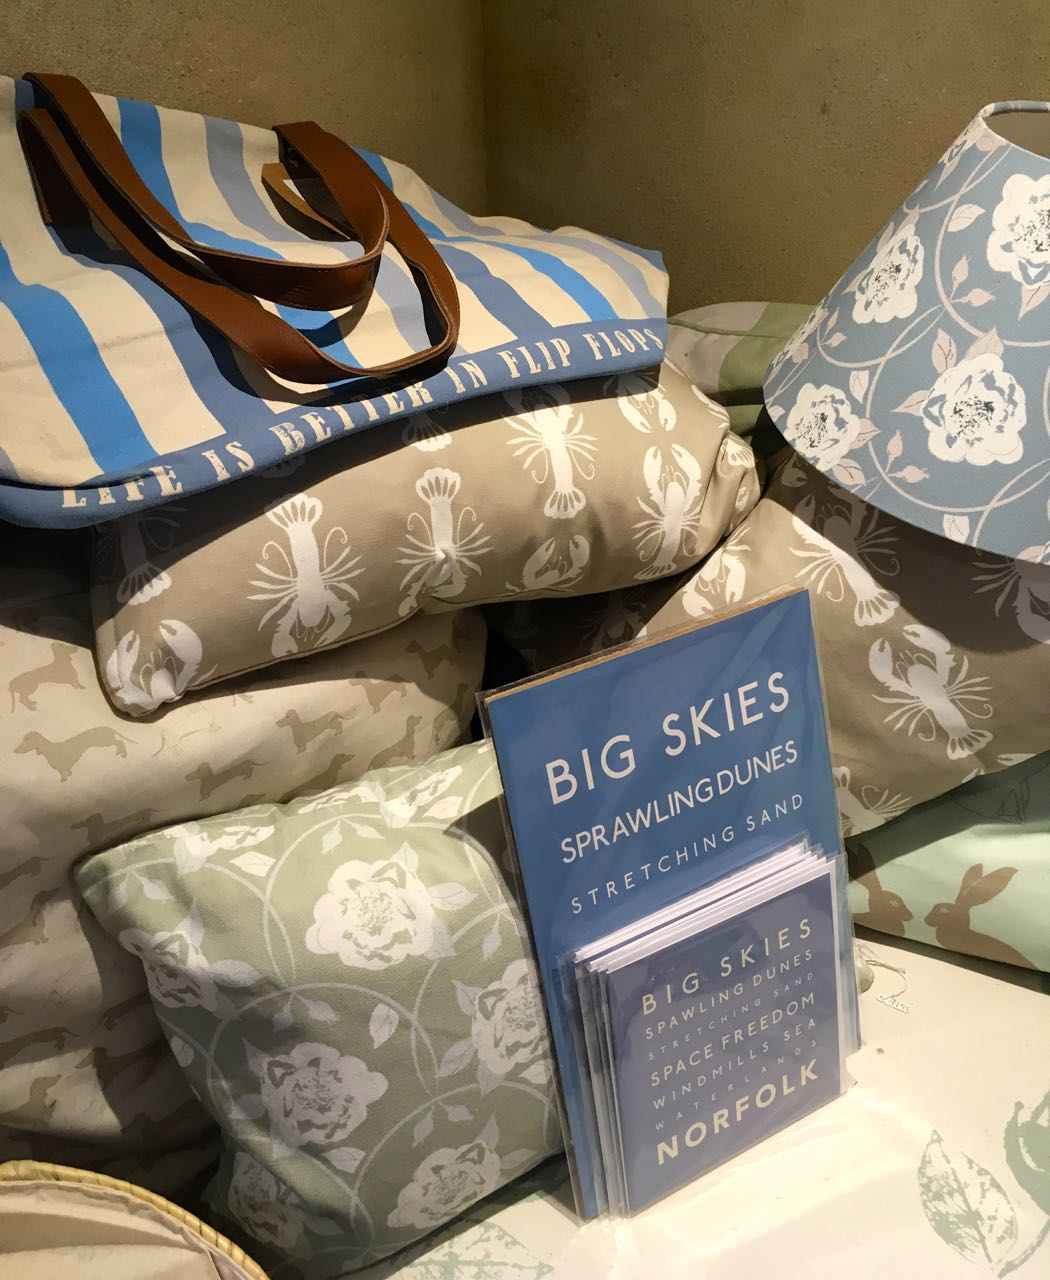 Norfolk's big skies quote and patterned homewares